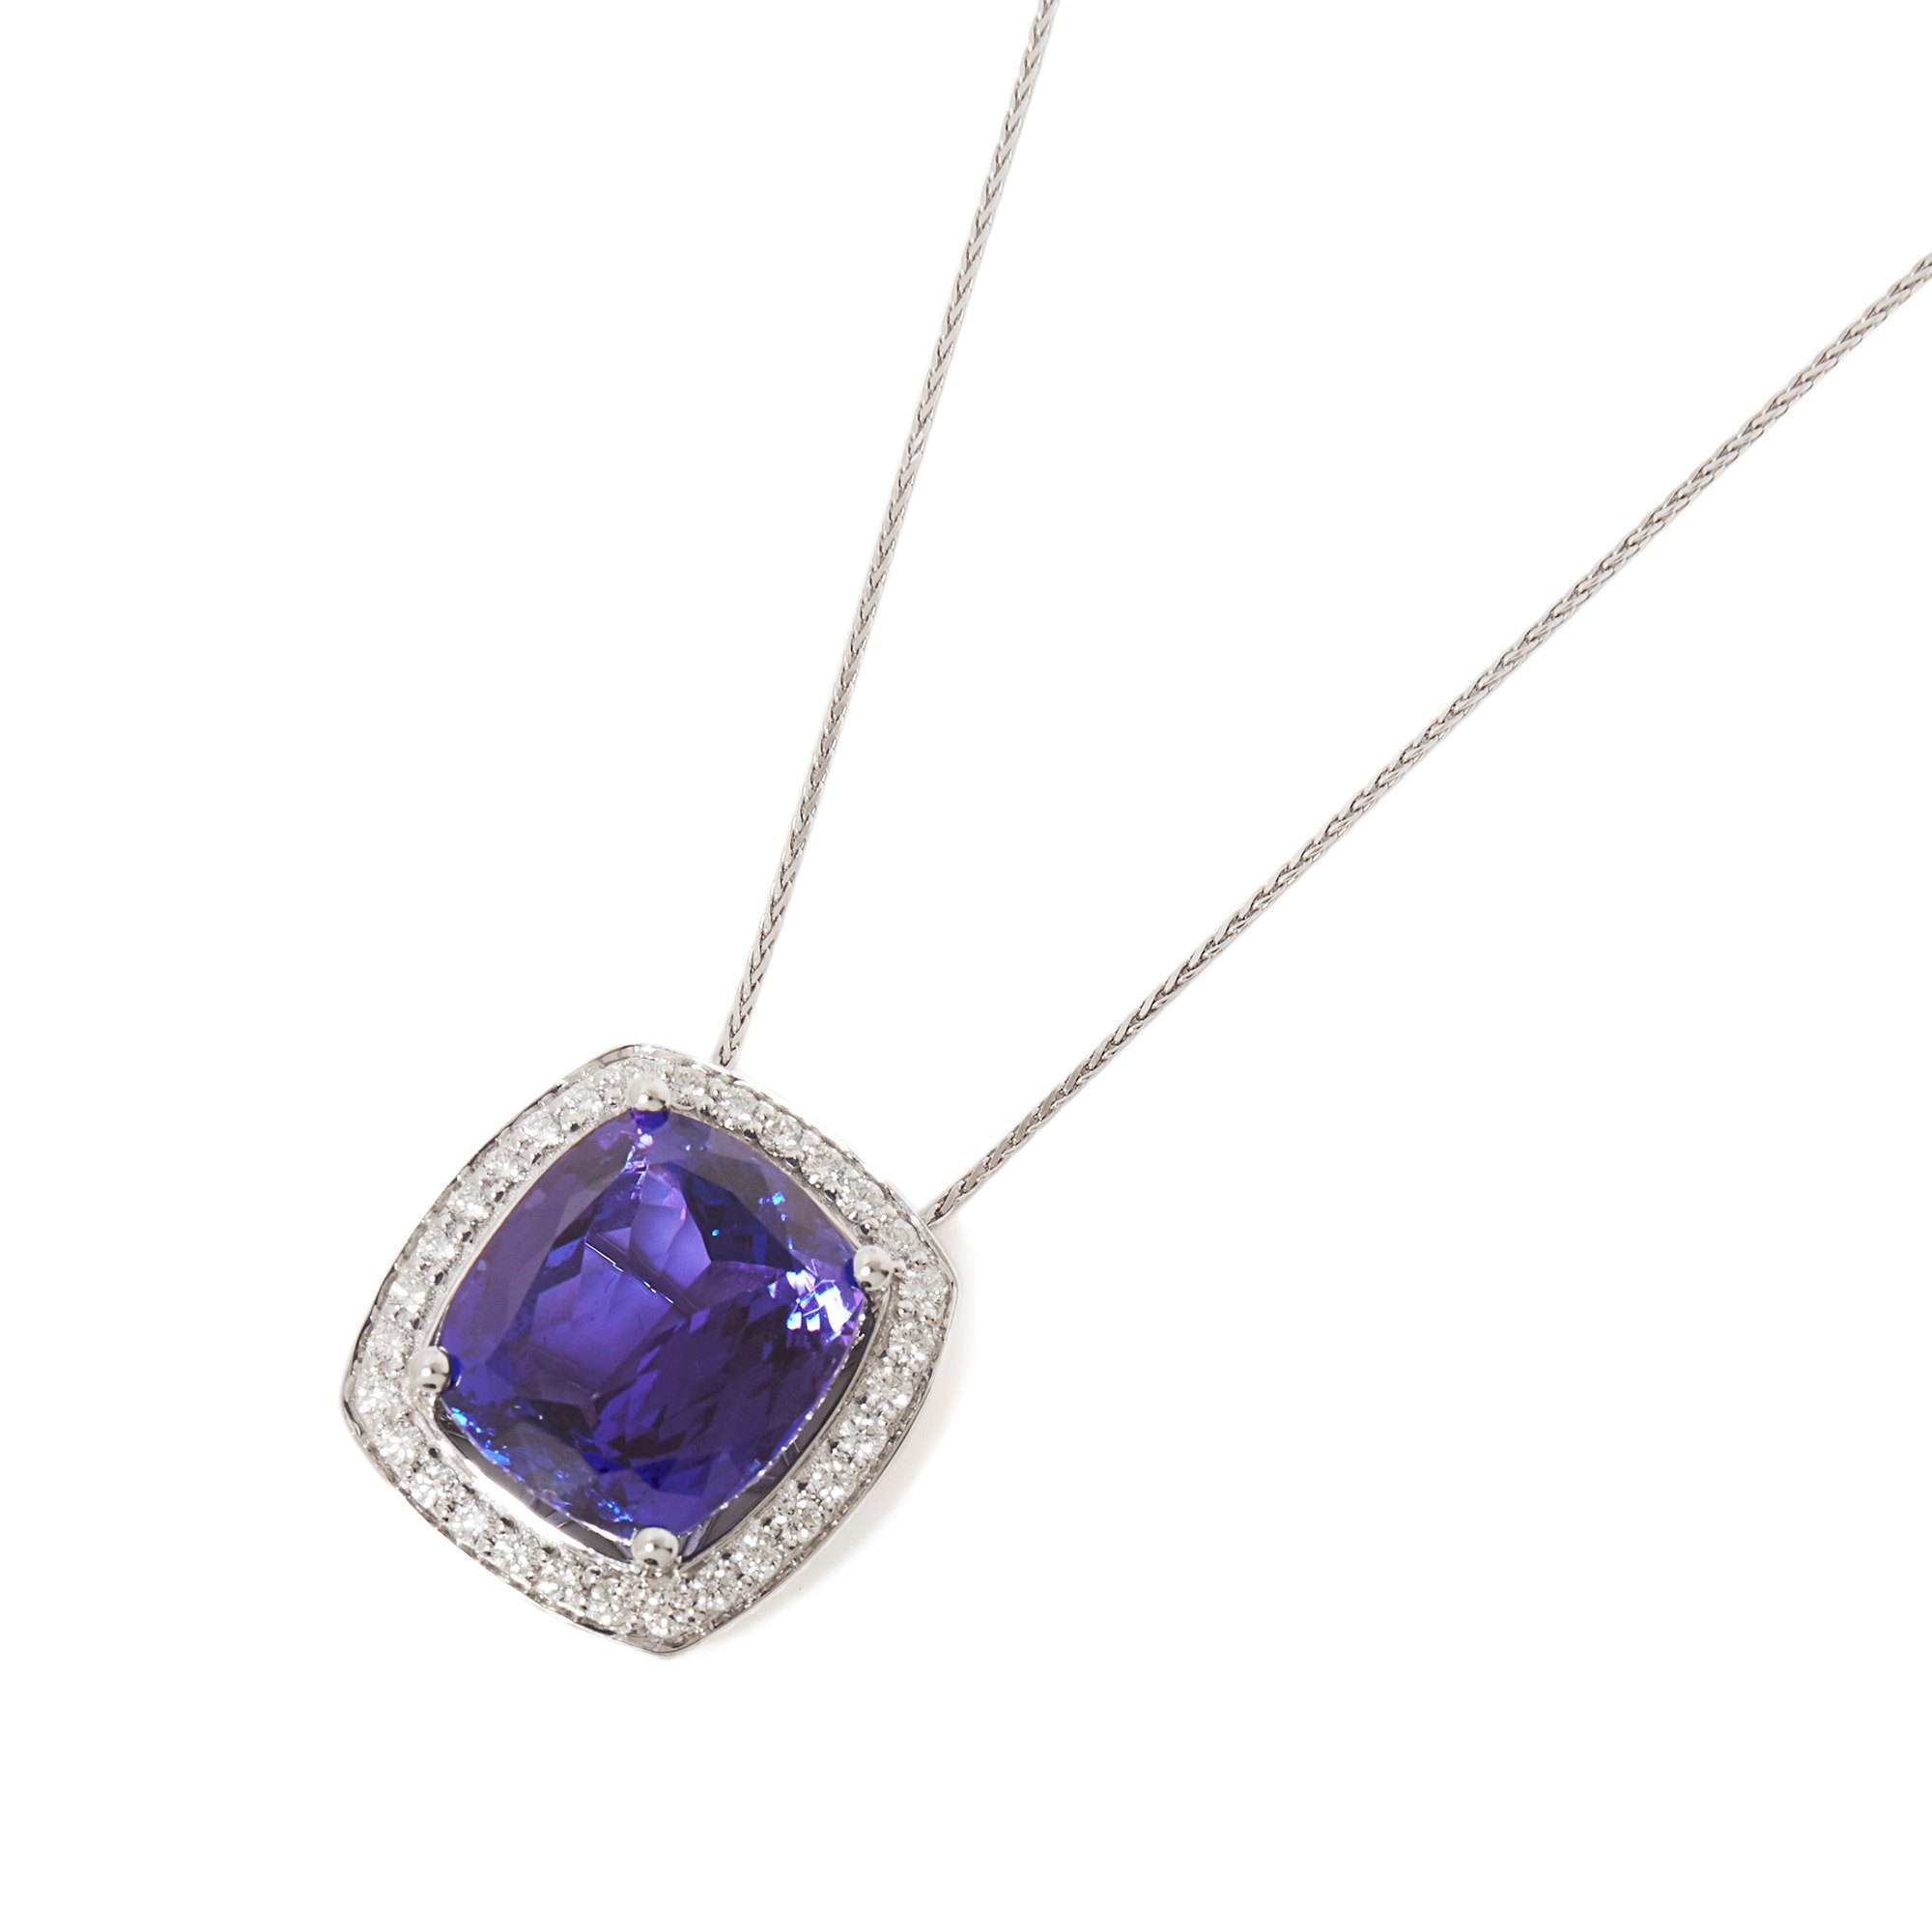 David Jerome 18k White Gold Tanzanite and Diamond Pendant